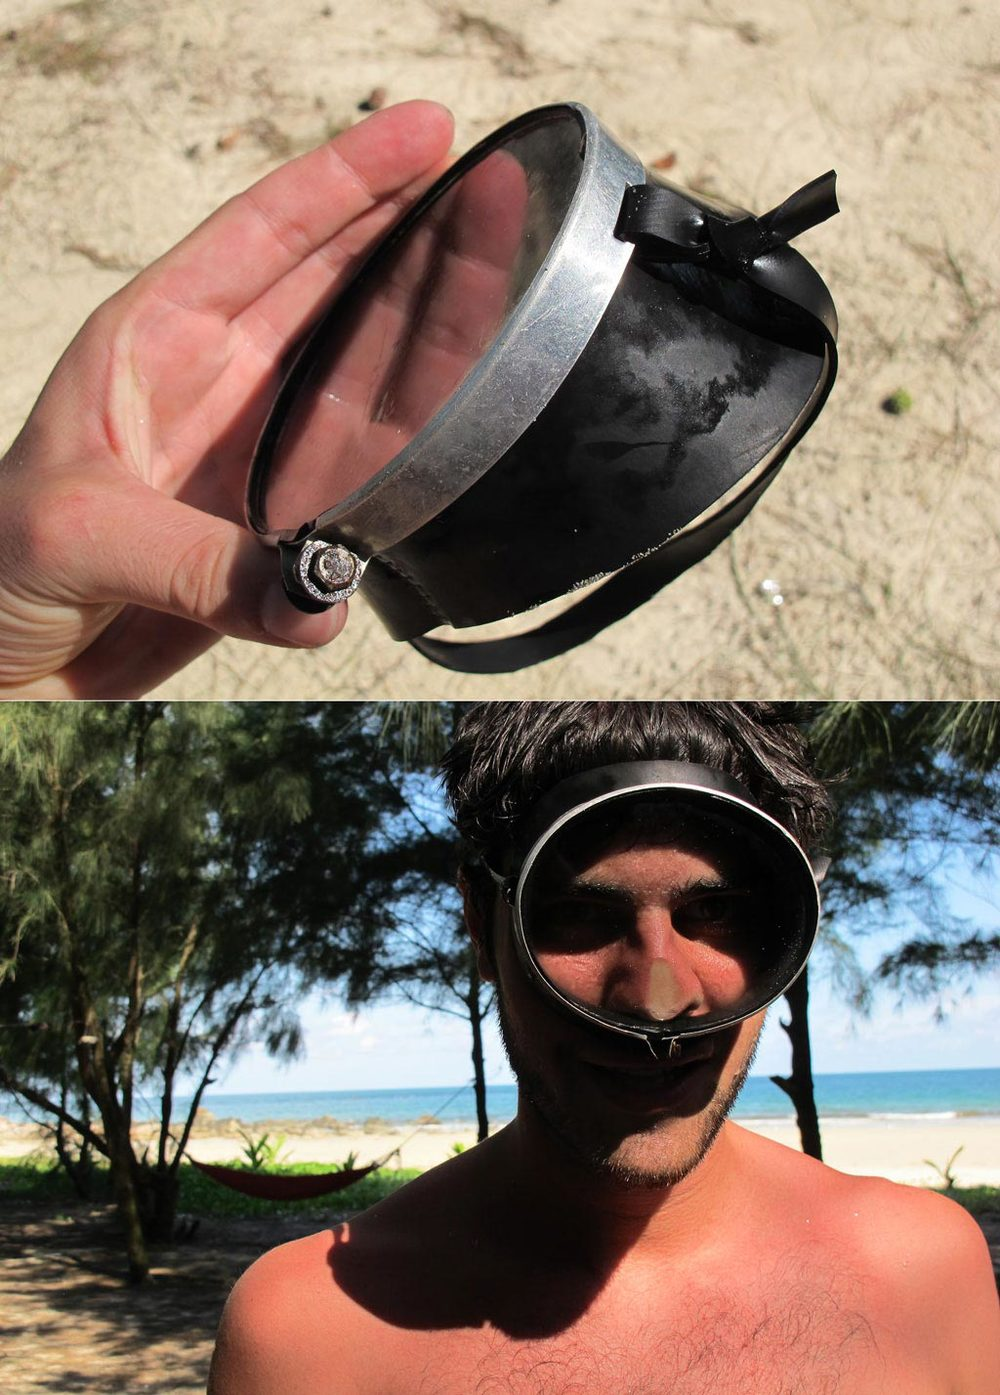 DIY water goggles from a vietnamese island used to fish. #VietnamInObjects / sergivich.com